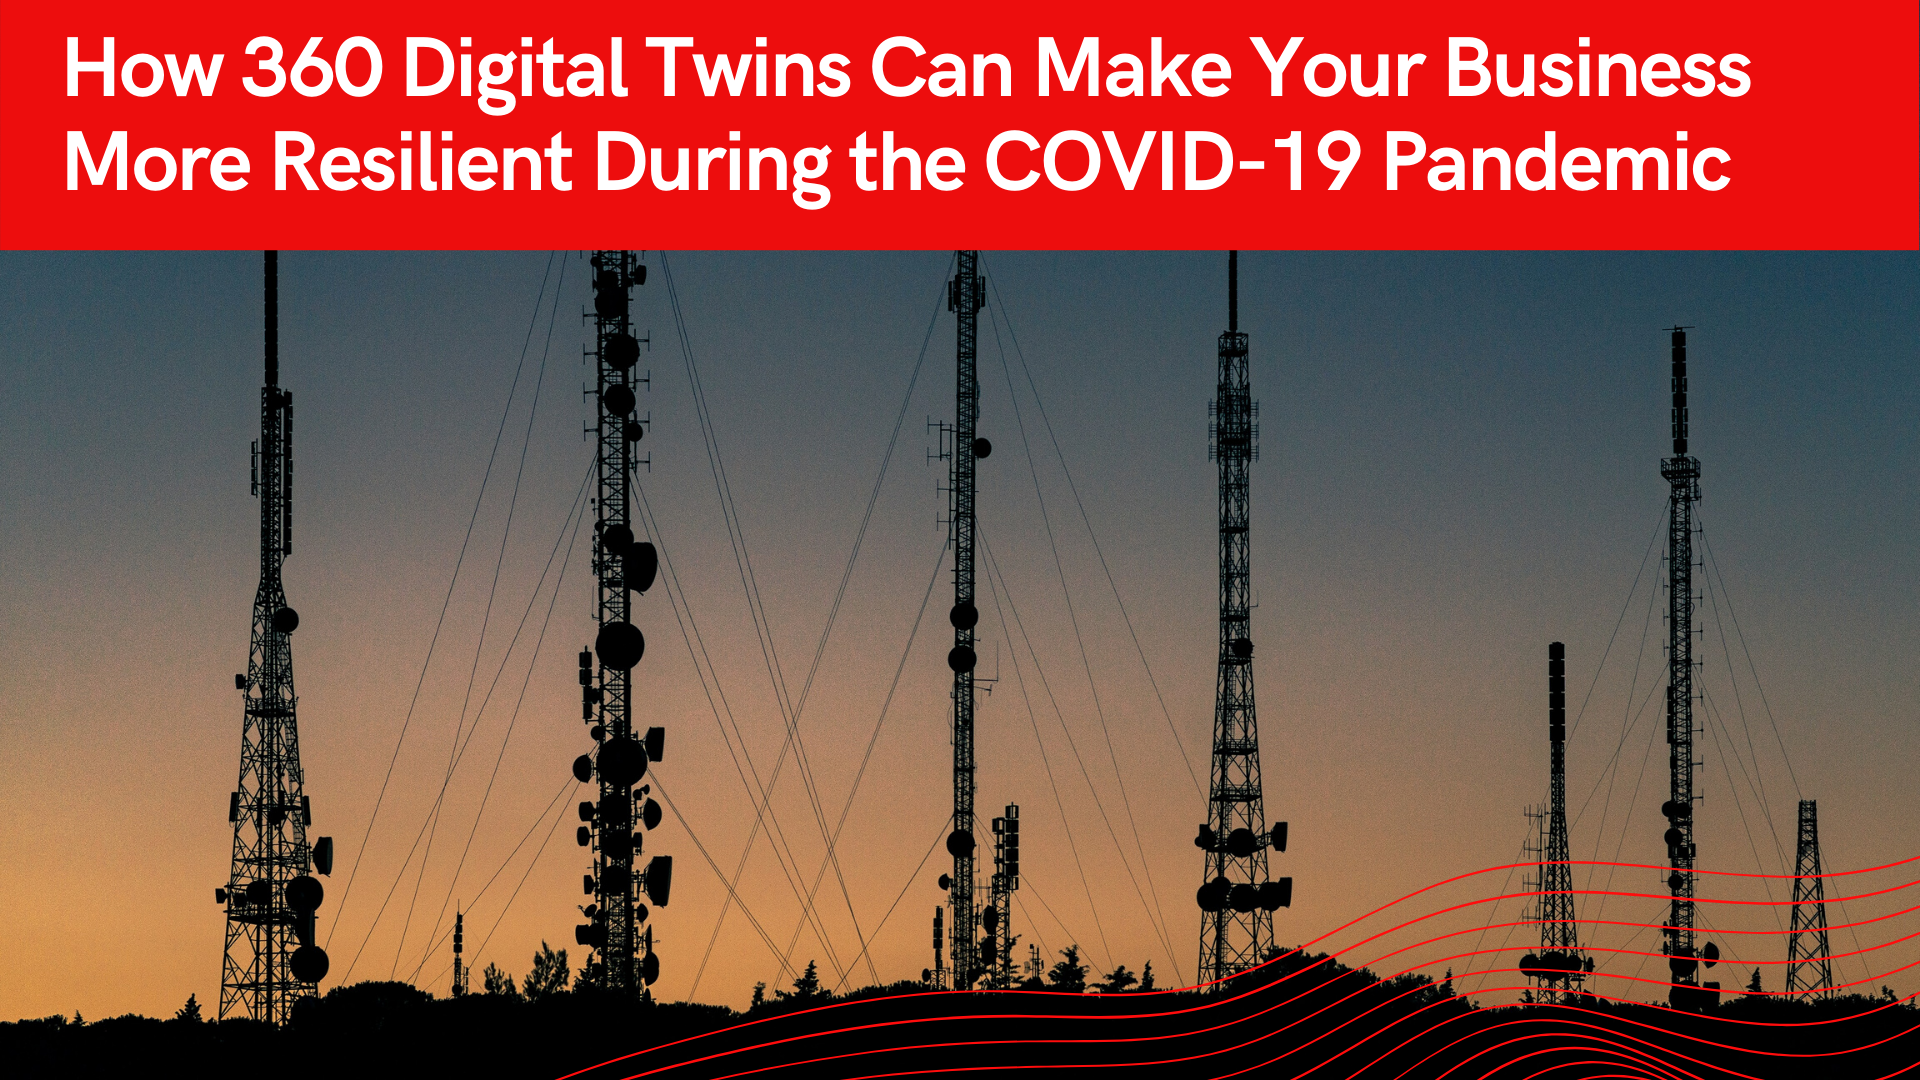 How 360 Digital Twins Can Make Your Business More Resilient During the COVID-19 Pandemic